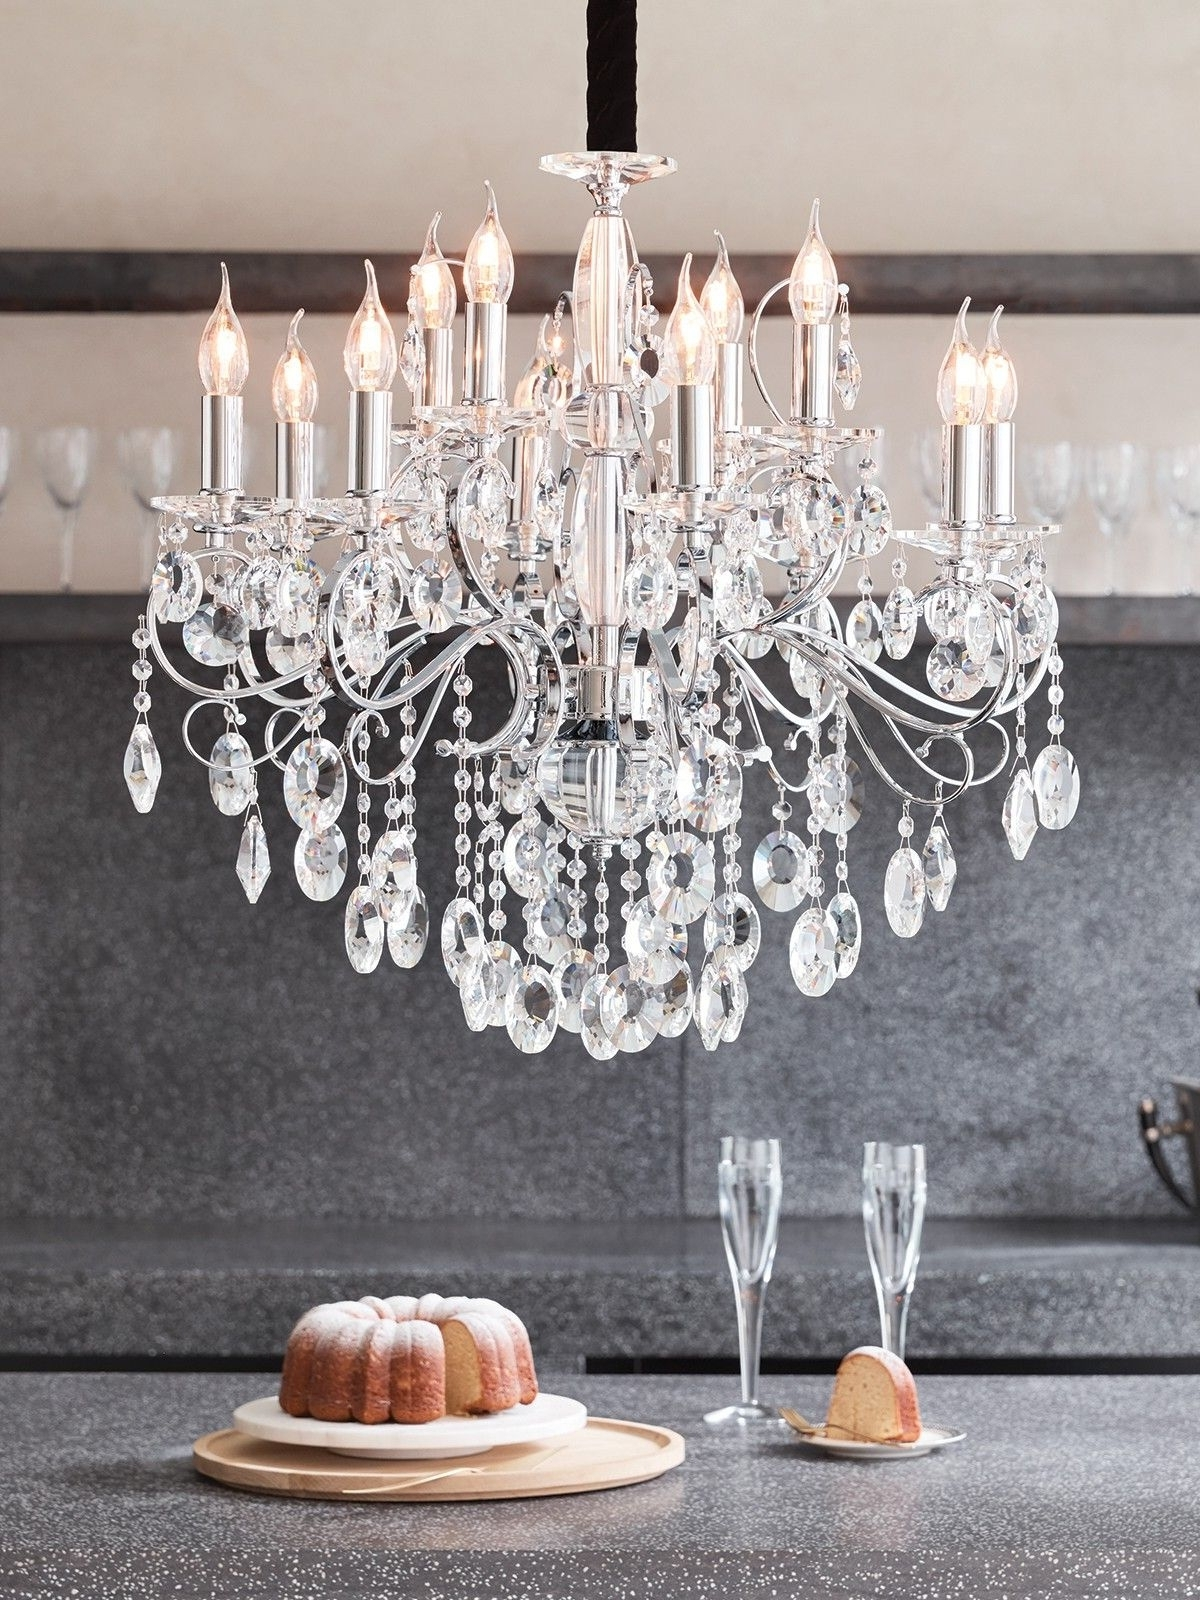 Madeleine 12 Light Egyptian Crystal Chandelier In Chrome (View 12 of 15)